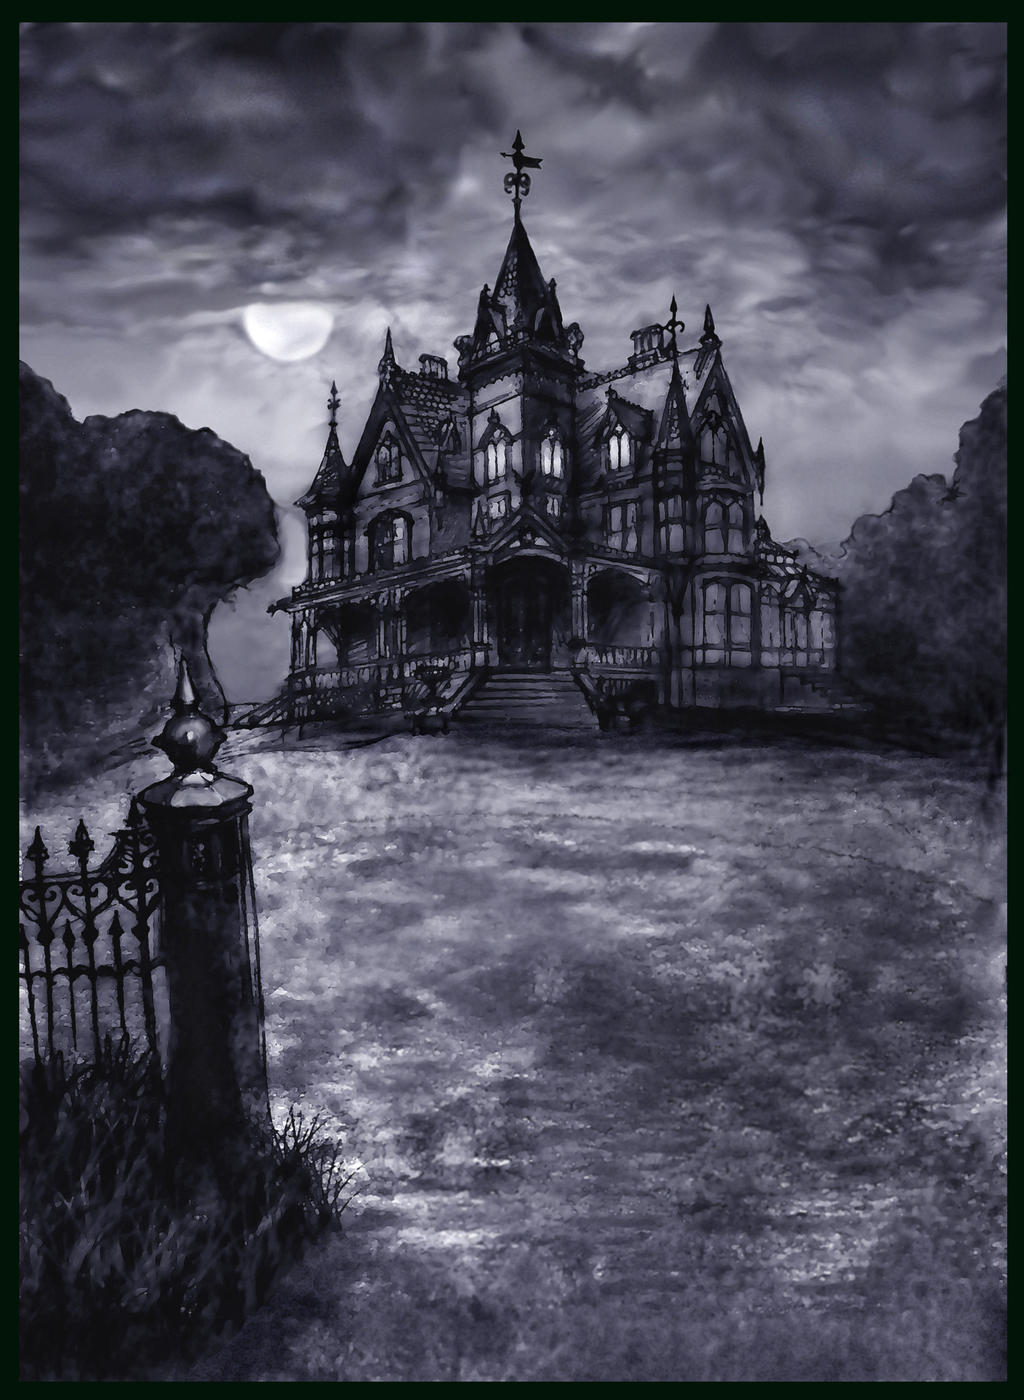 CastShadowsStudio Victorian Gothic Dream House Stormy Moon By